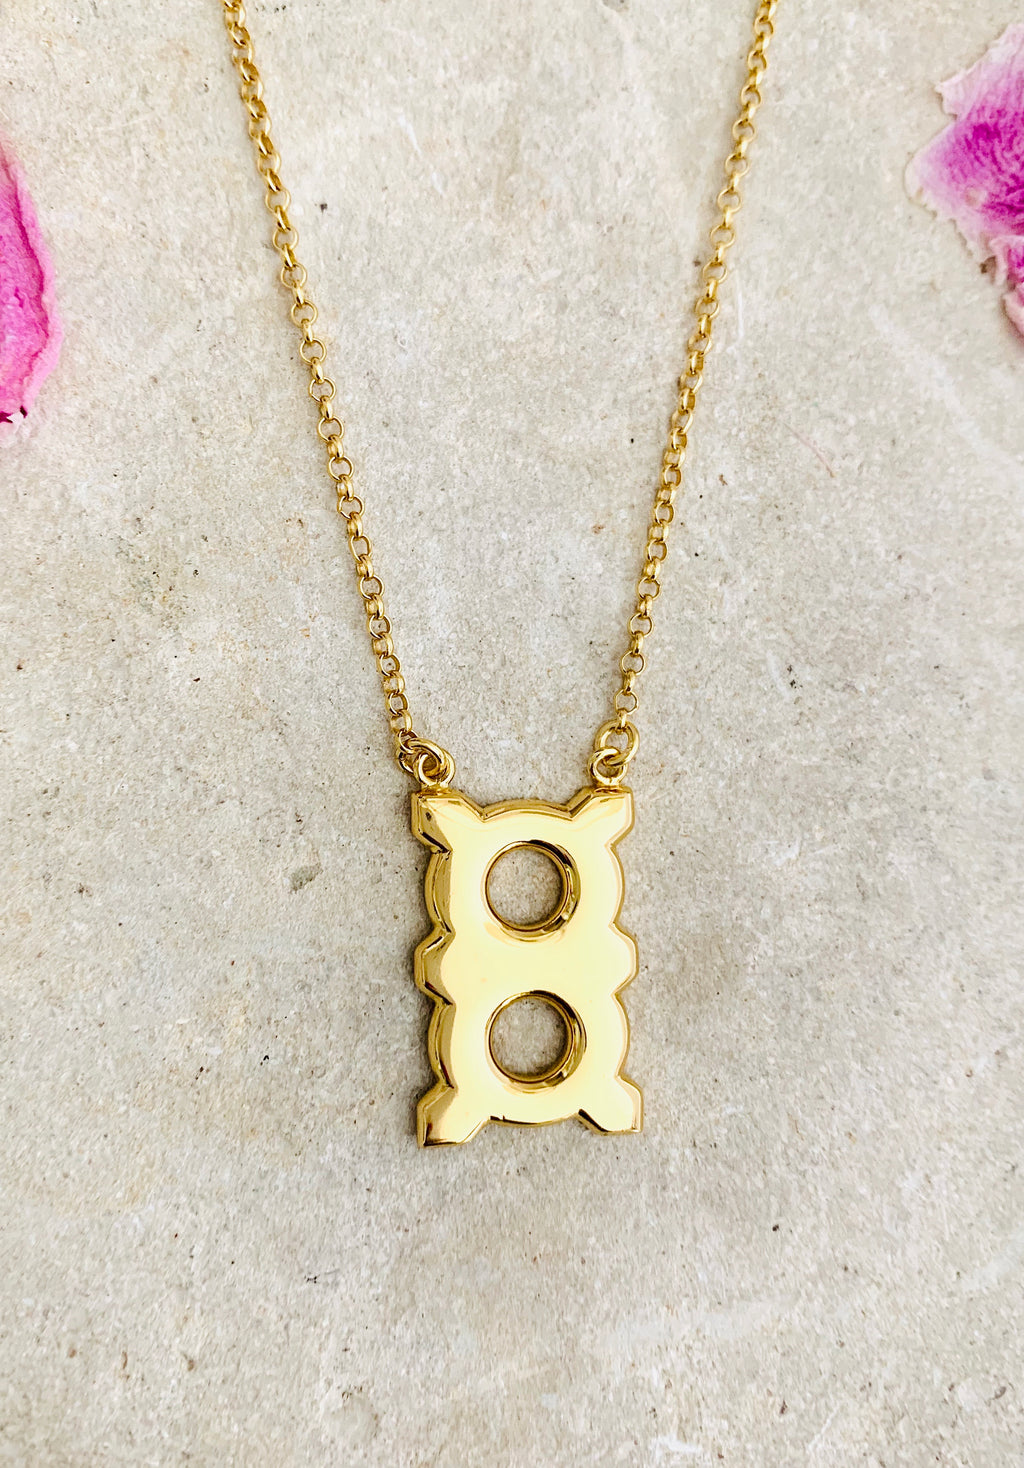 Adinkra Obaa Ne Oman Necklace